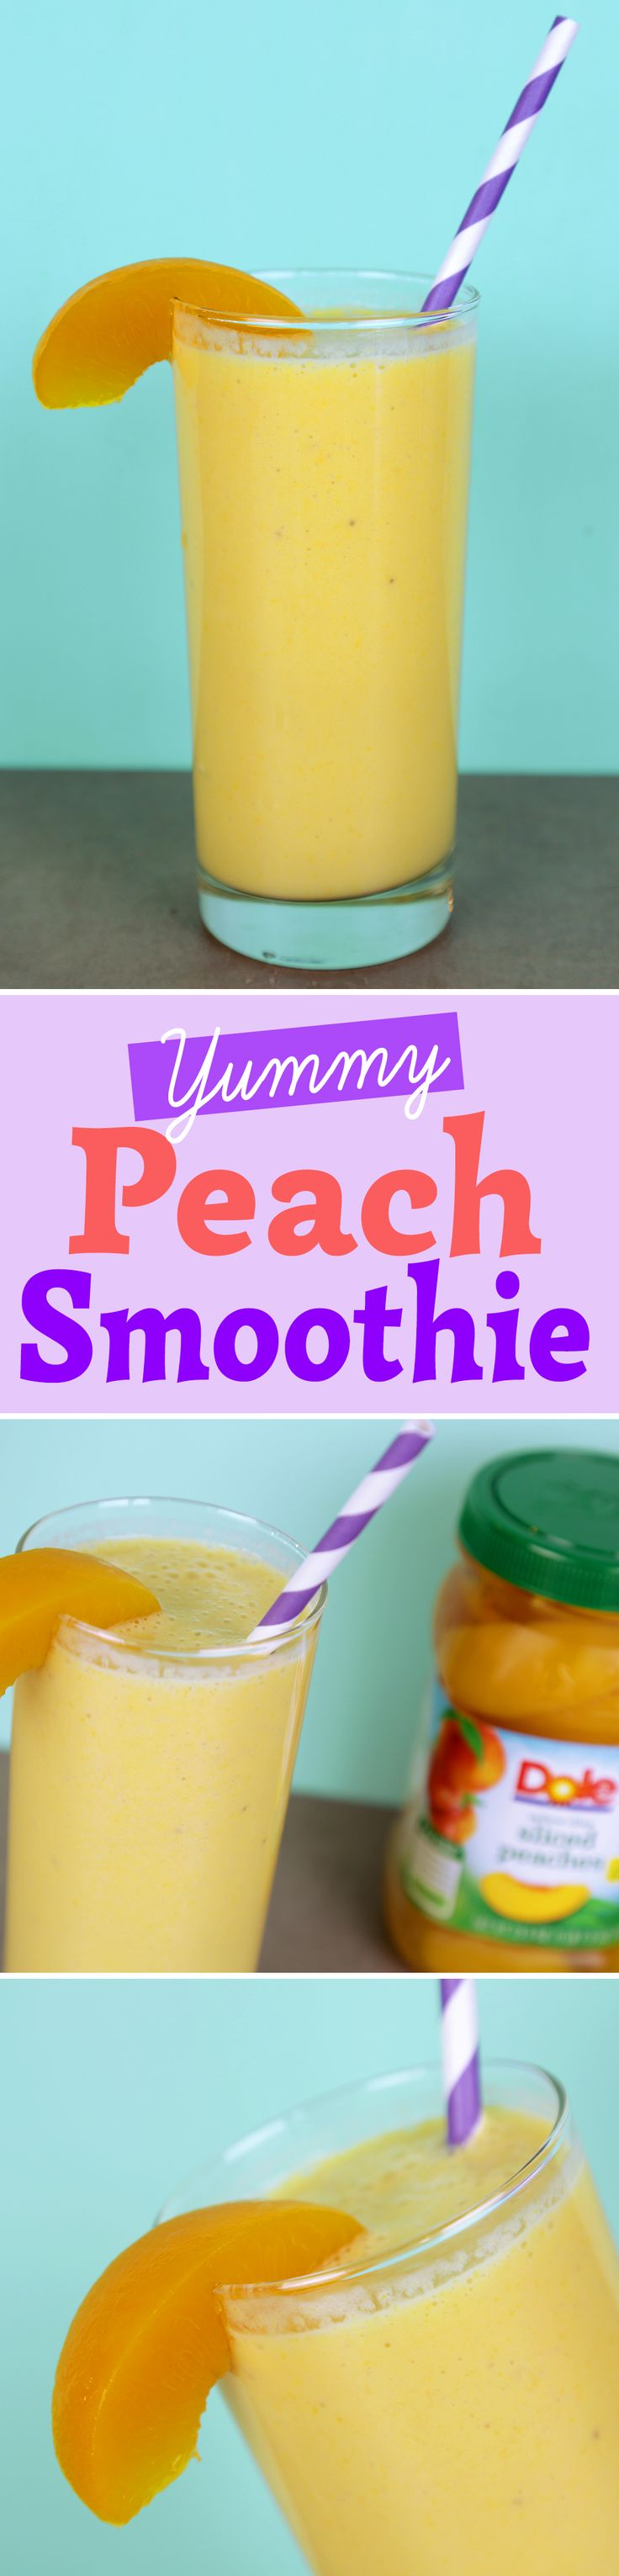 What ingredients do you need to make the easiest and yummiest Peach Smoothie of all time? DOLE® Jarred Peaches, a banana and some yogurt. That's it!